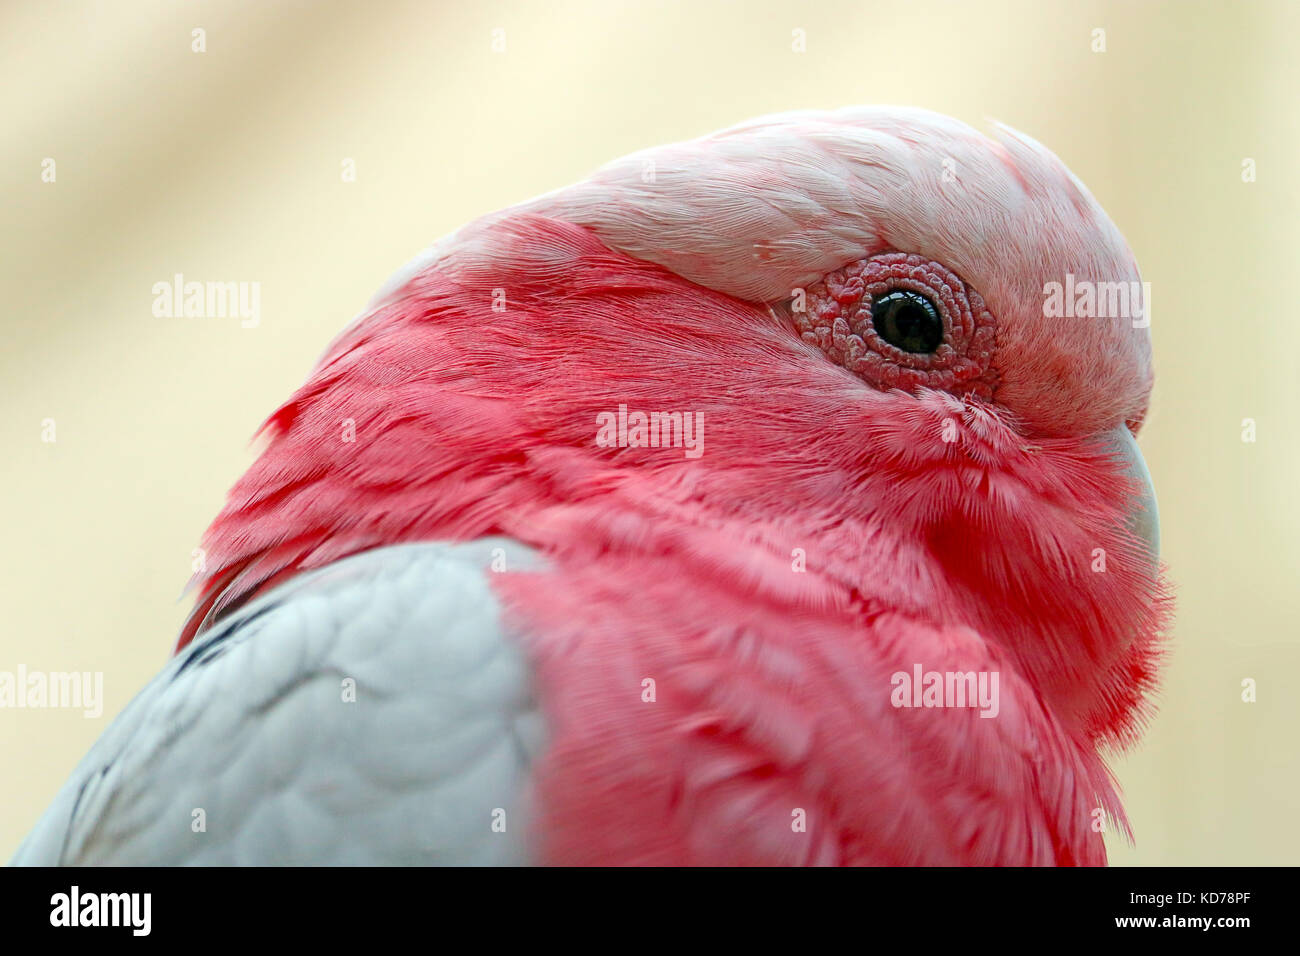 head of a pink galah cockatoo bird in profile view - Stock Image